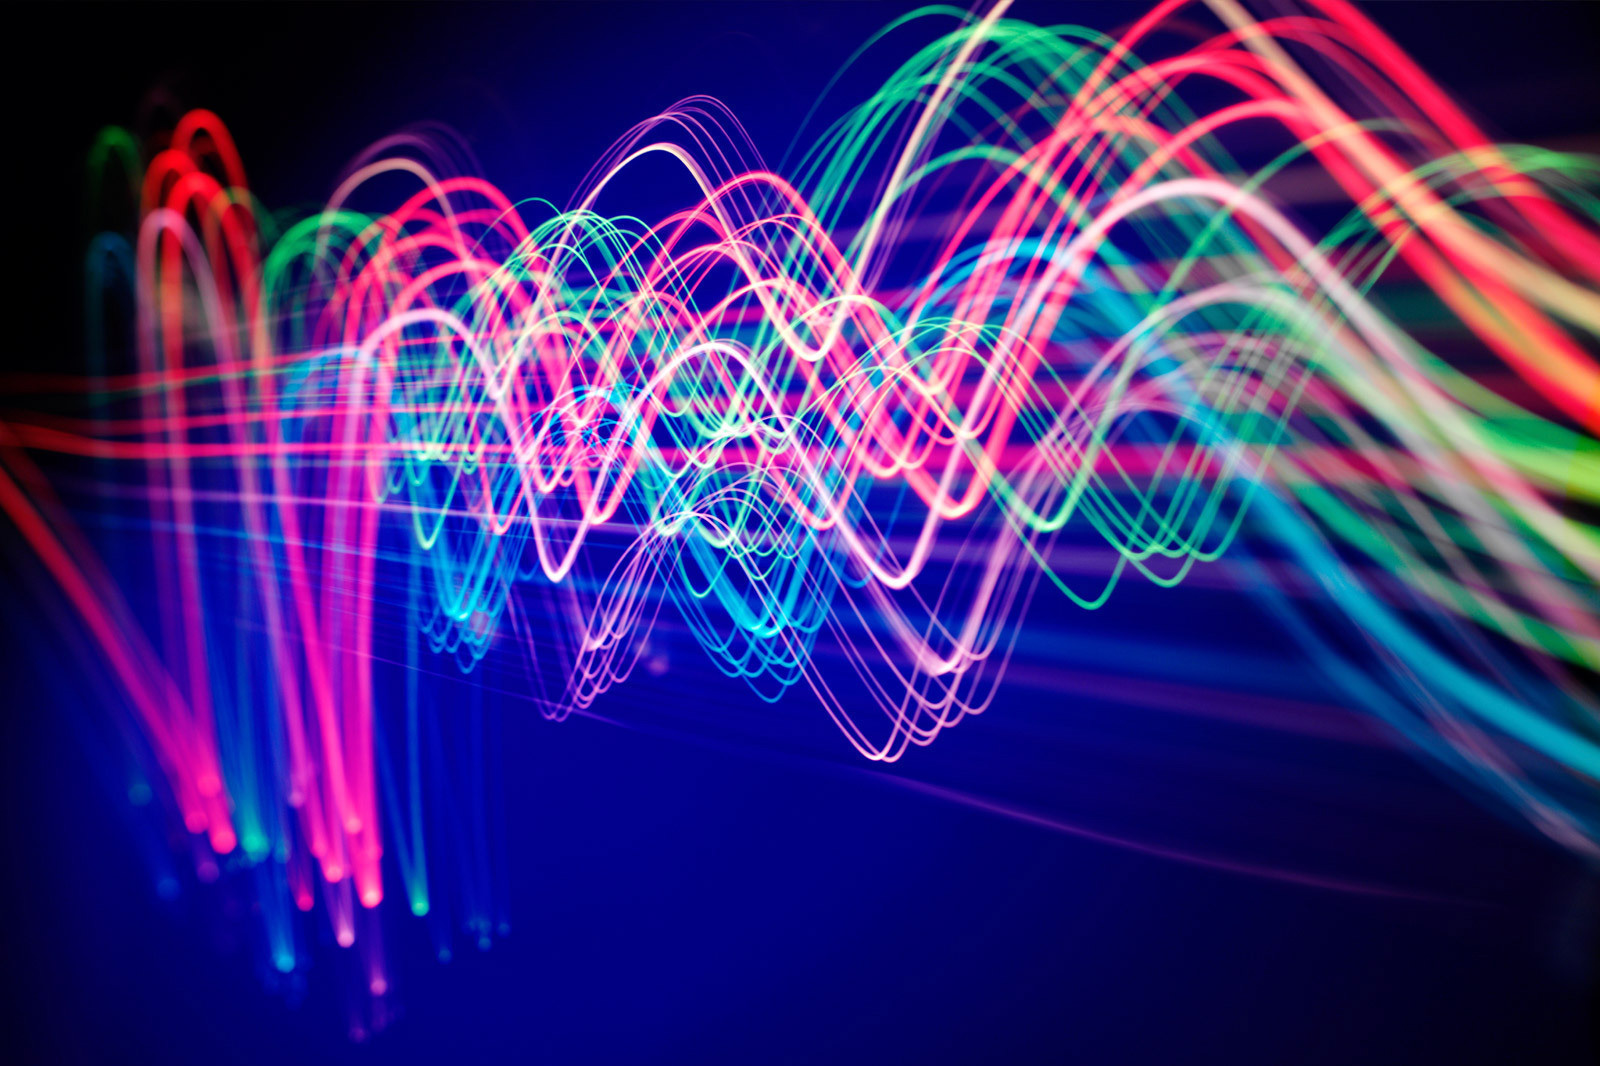 Zest4 Connectivity image depicted by light trails.